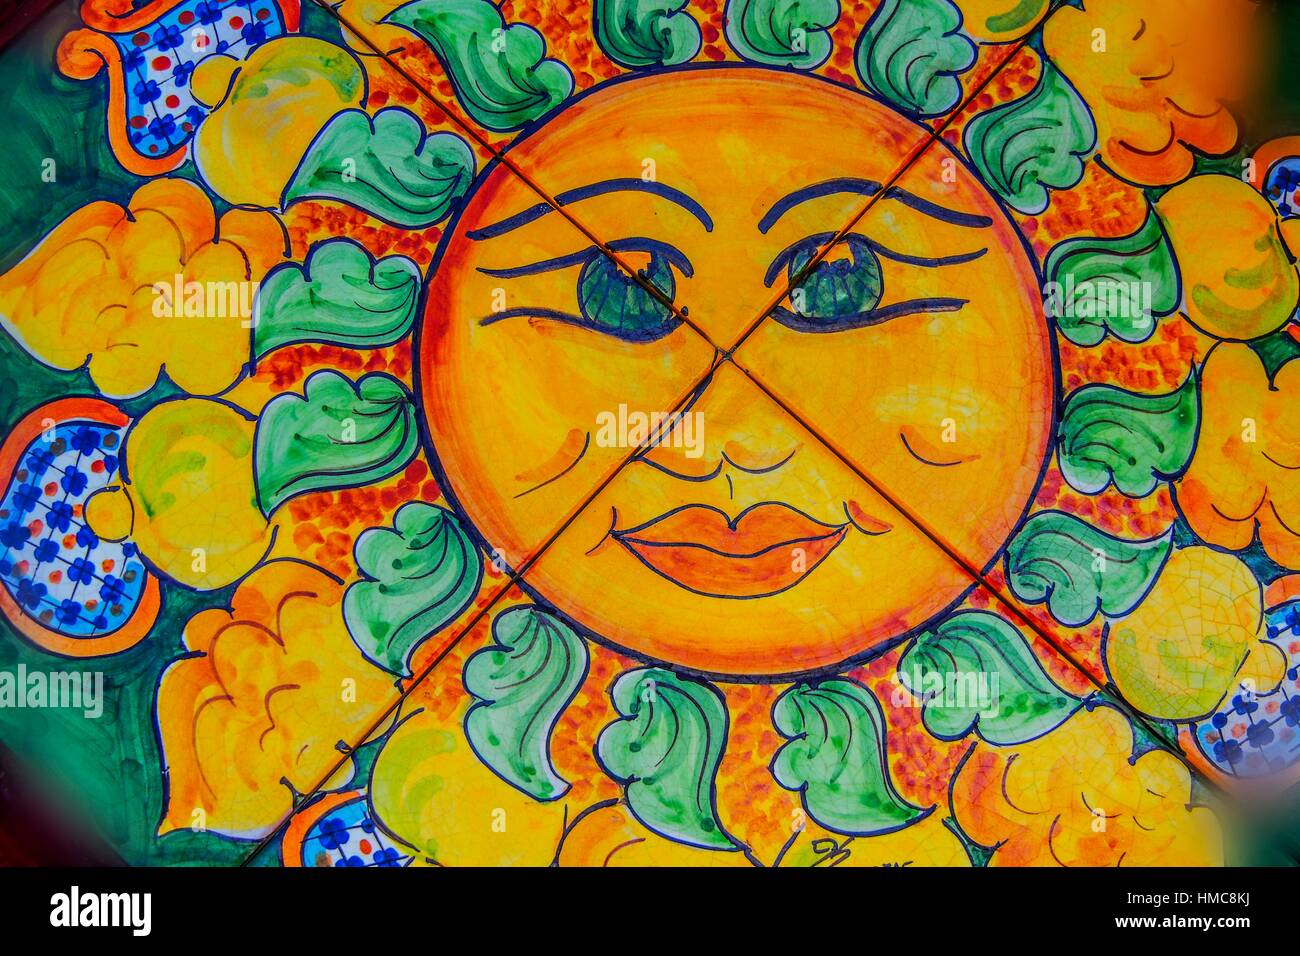 Hand painted ceramic tiles depicting a sun, Sicily, Italy Stock ...